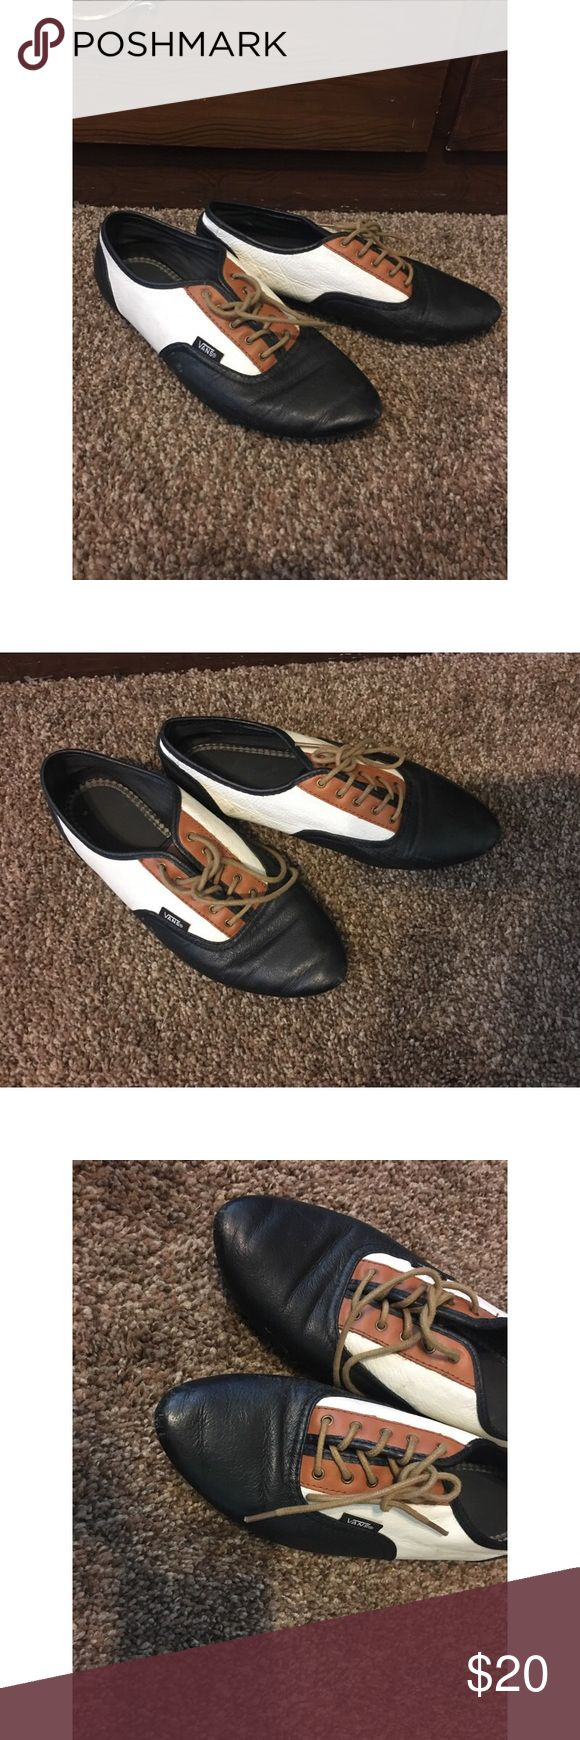 Vans oxfords Good condition • Vans brand • lace up with black, brown, white leather Vans Shoes Flats & Loafers